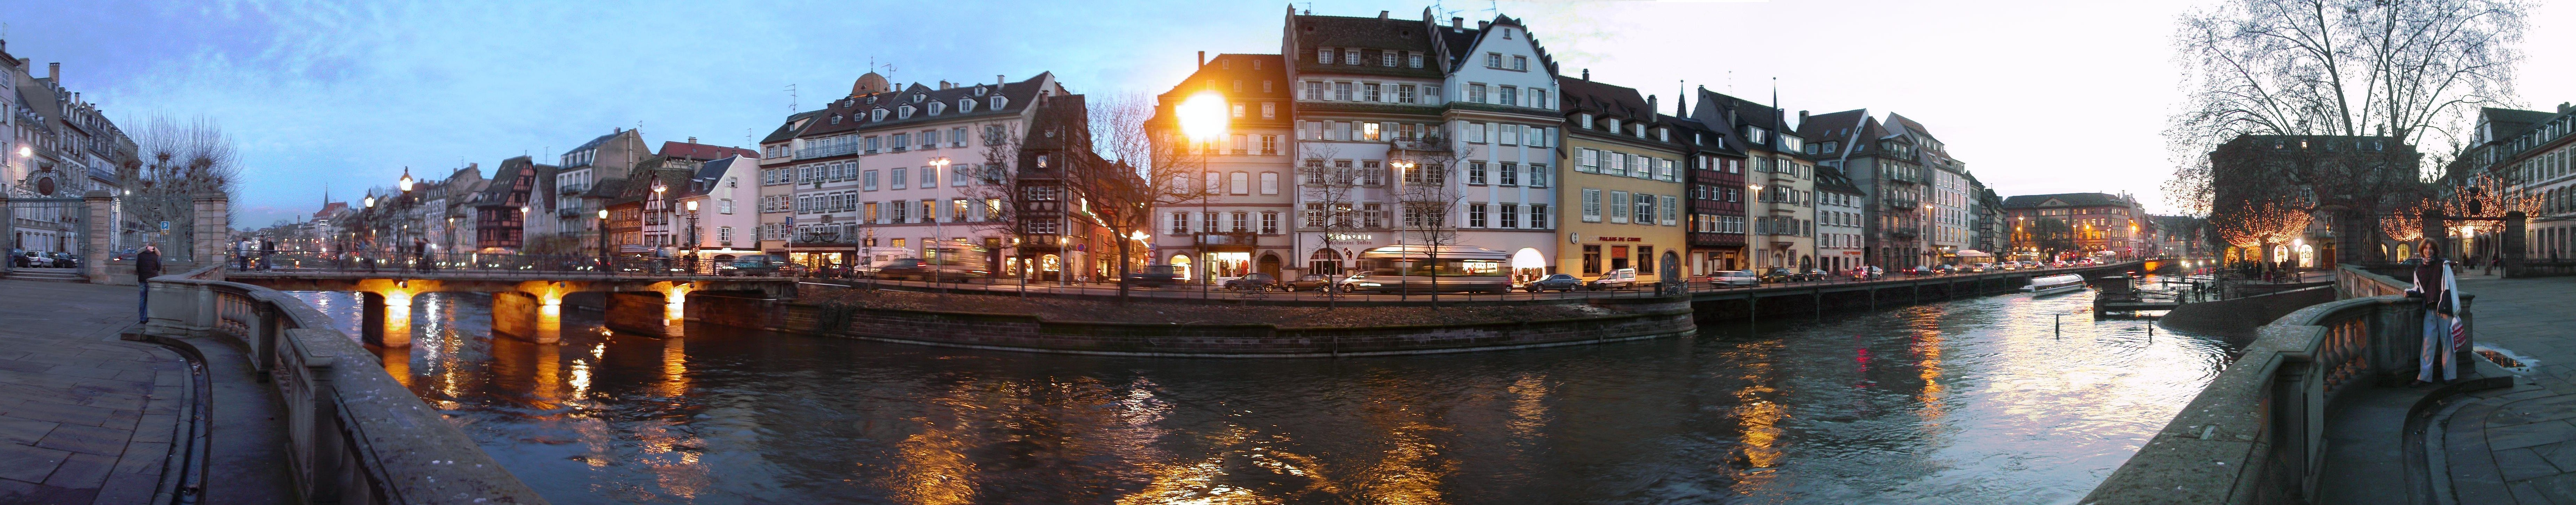 File:Strasbourg River Ill.jpg - Wikipedia, the free encyclopedia